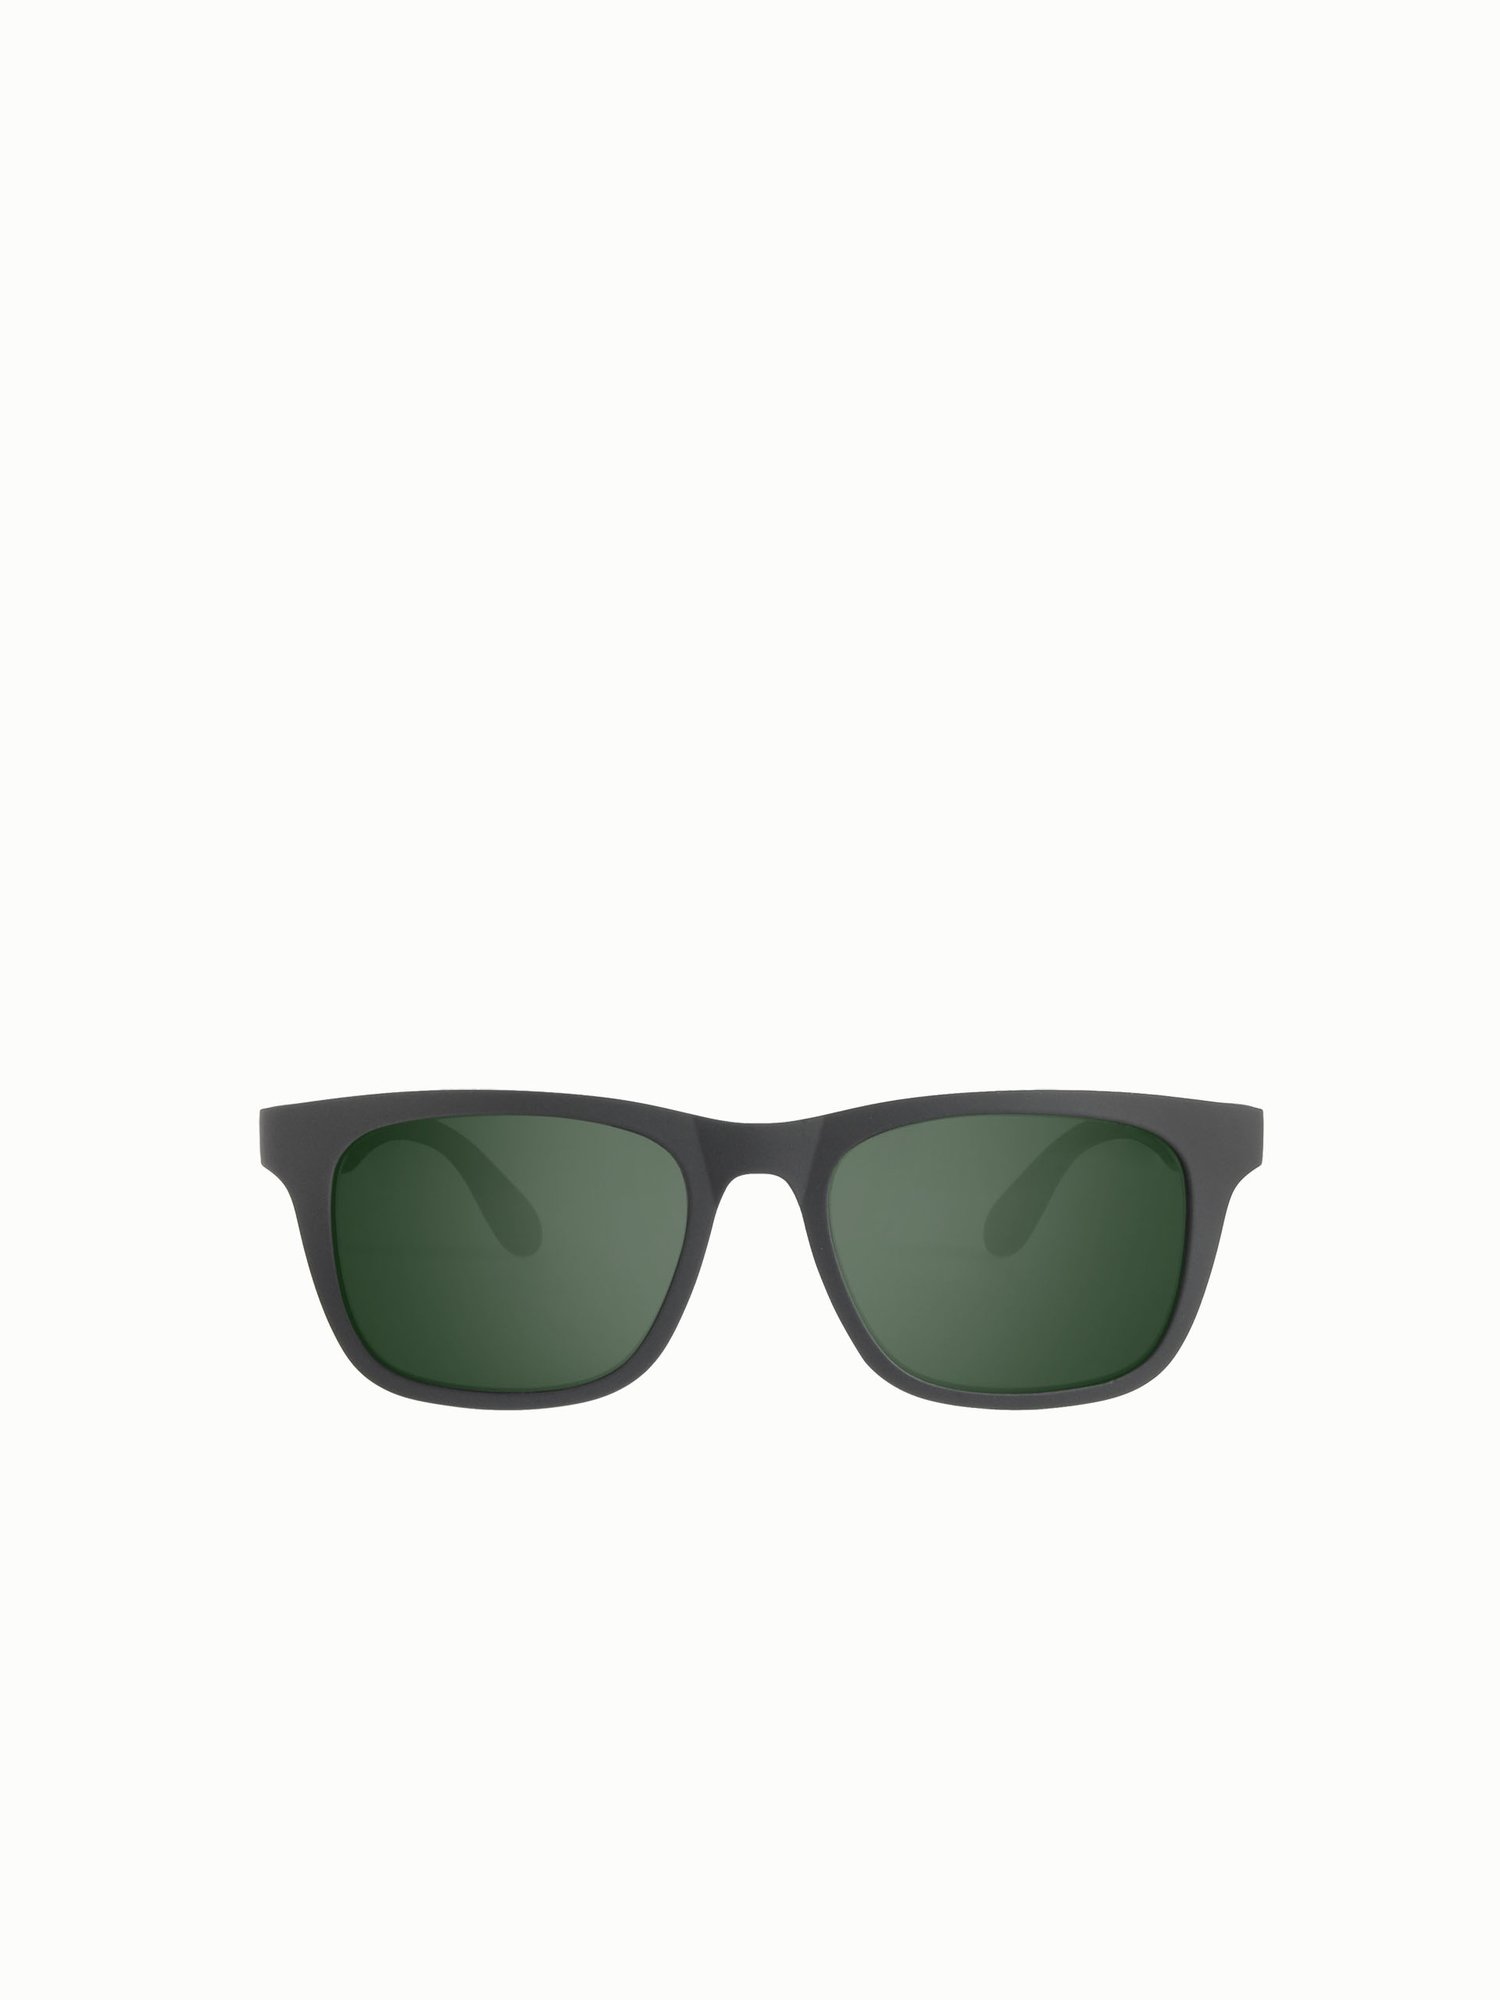 Yachting Sunglasses Man - Dunkelgrau / Navy Blau / Green /